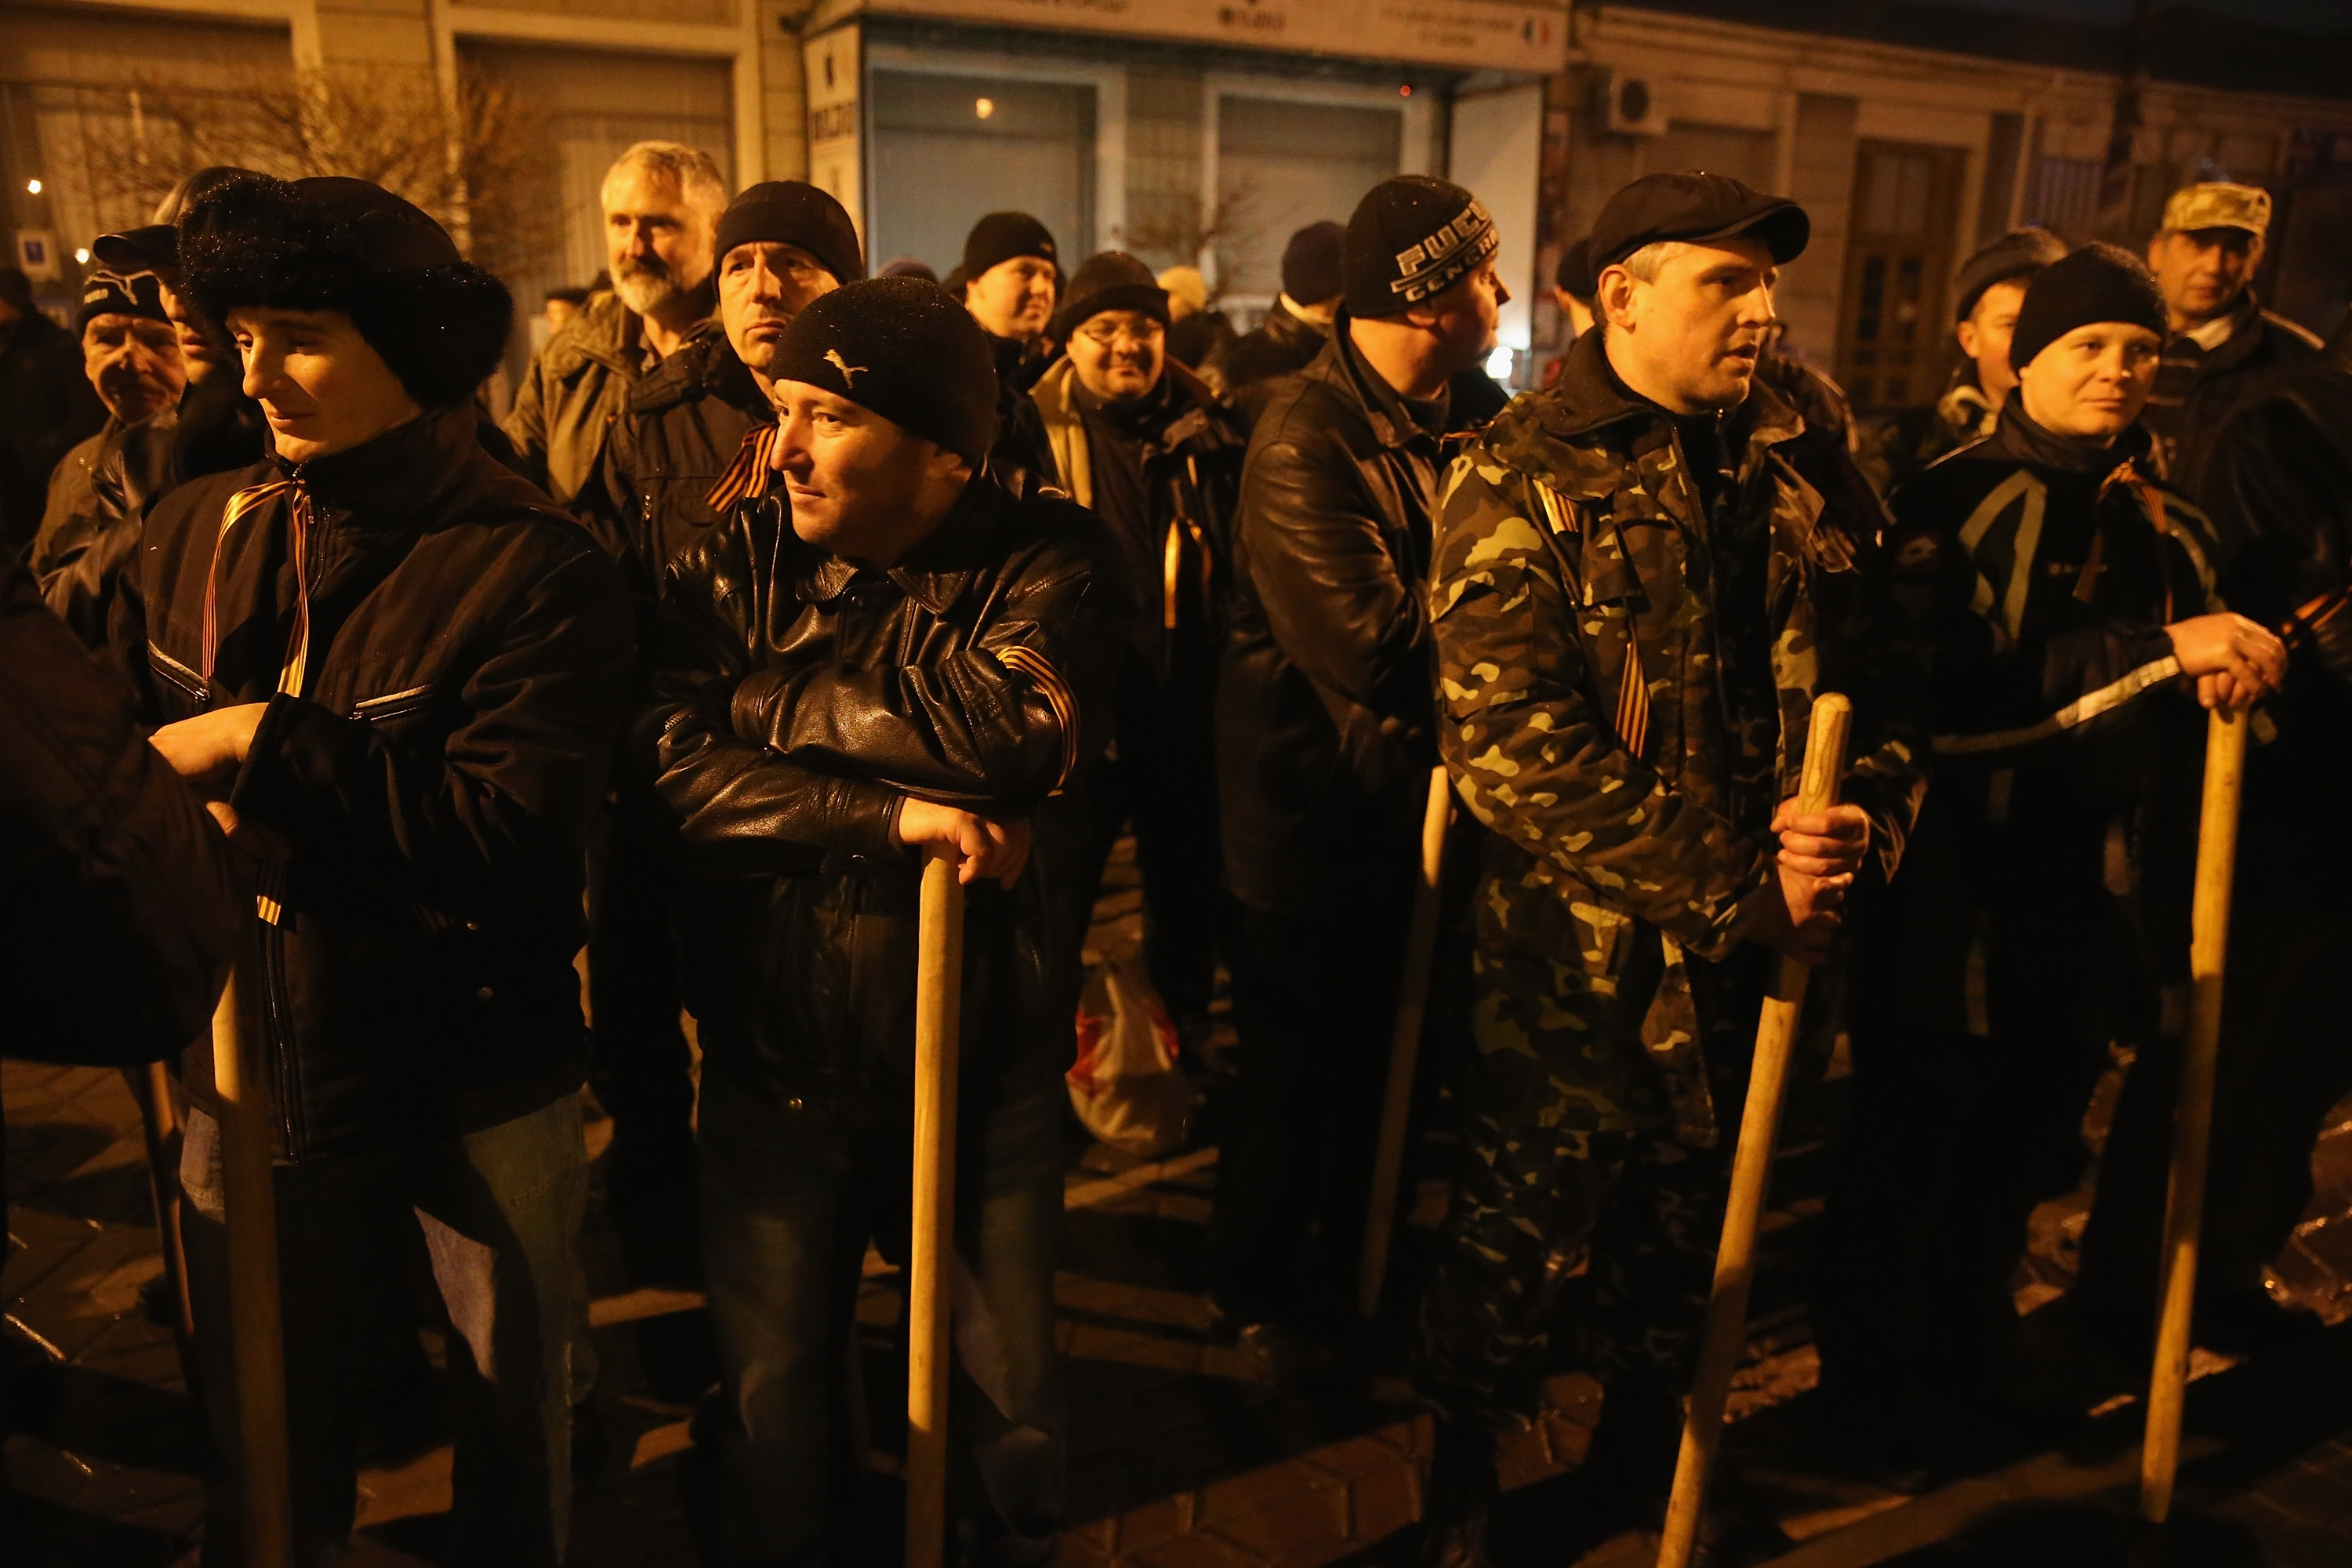 Pro-Russian men armed with clubs gather outside the Crimea regional parliament building in Simferopol, Ukraine, after parliamentarians voted for a May 25th referendum on Crimea's autonomy earlier Thursday.